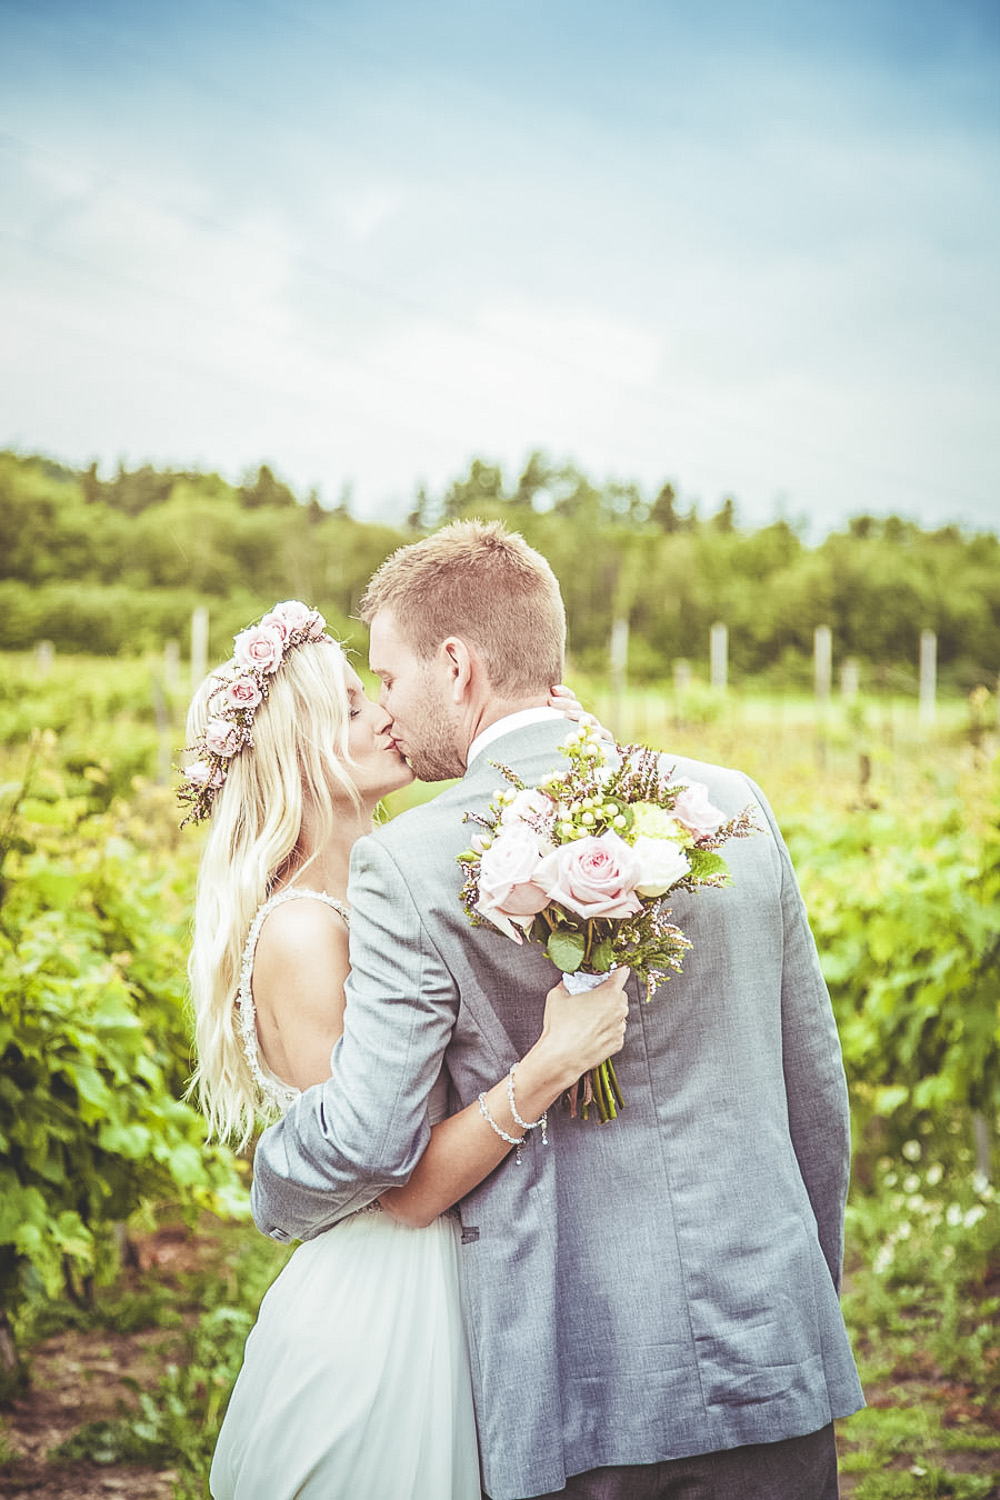 Hayley Paige Wedding Dress For A Pastel Themed Wedding With Rose